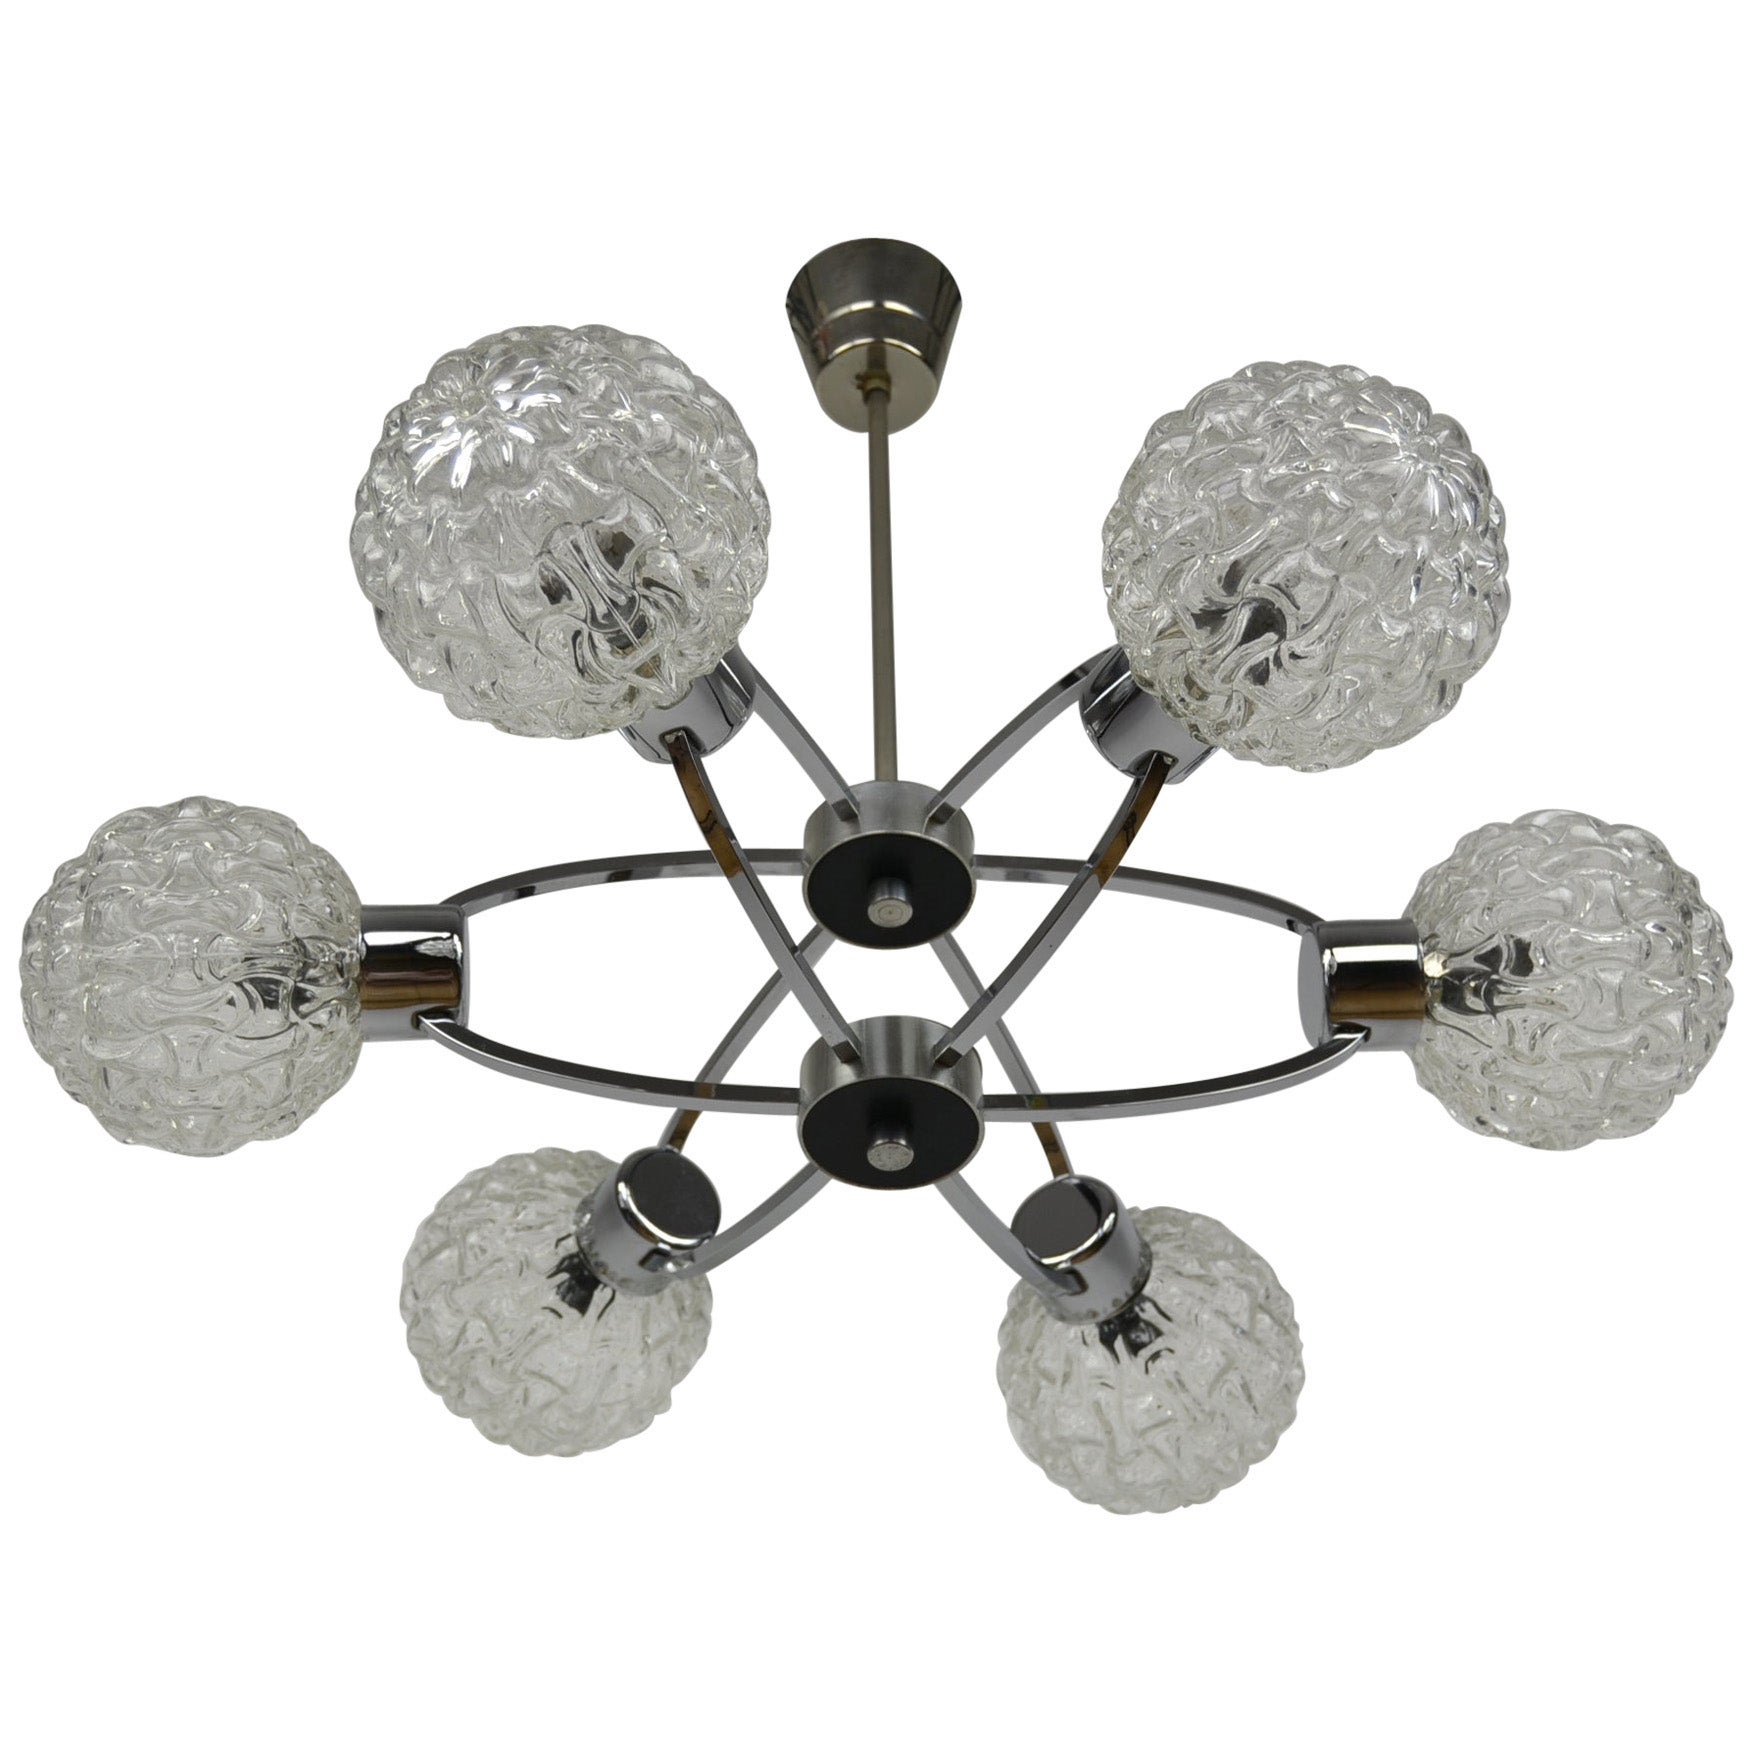 Space Age Atomic Chandelier, 1960s, Germany